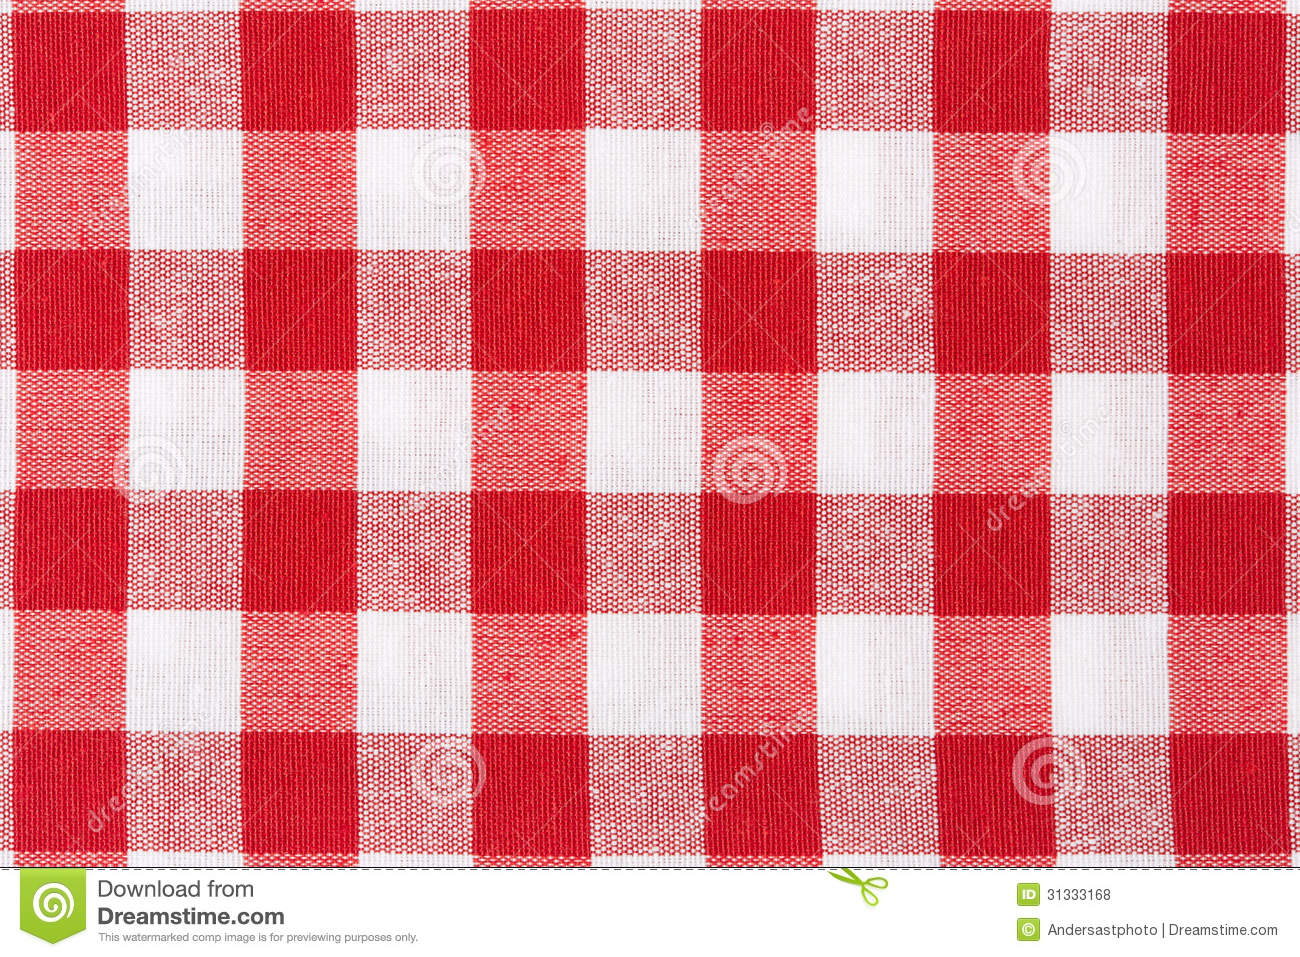 Table Cloth Background : Tablecloth Background Royalty Free Stock Photos - Image: 31333168